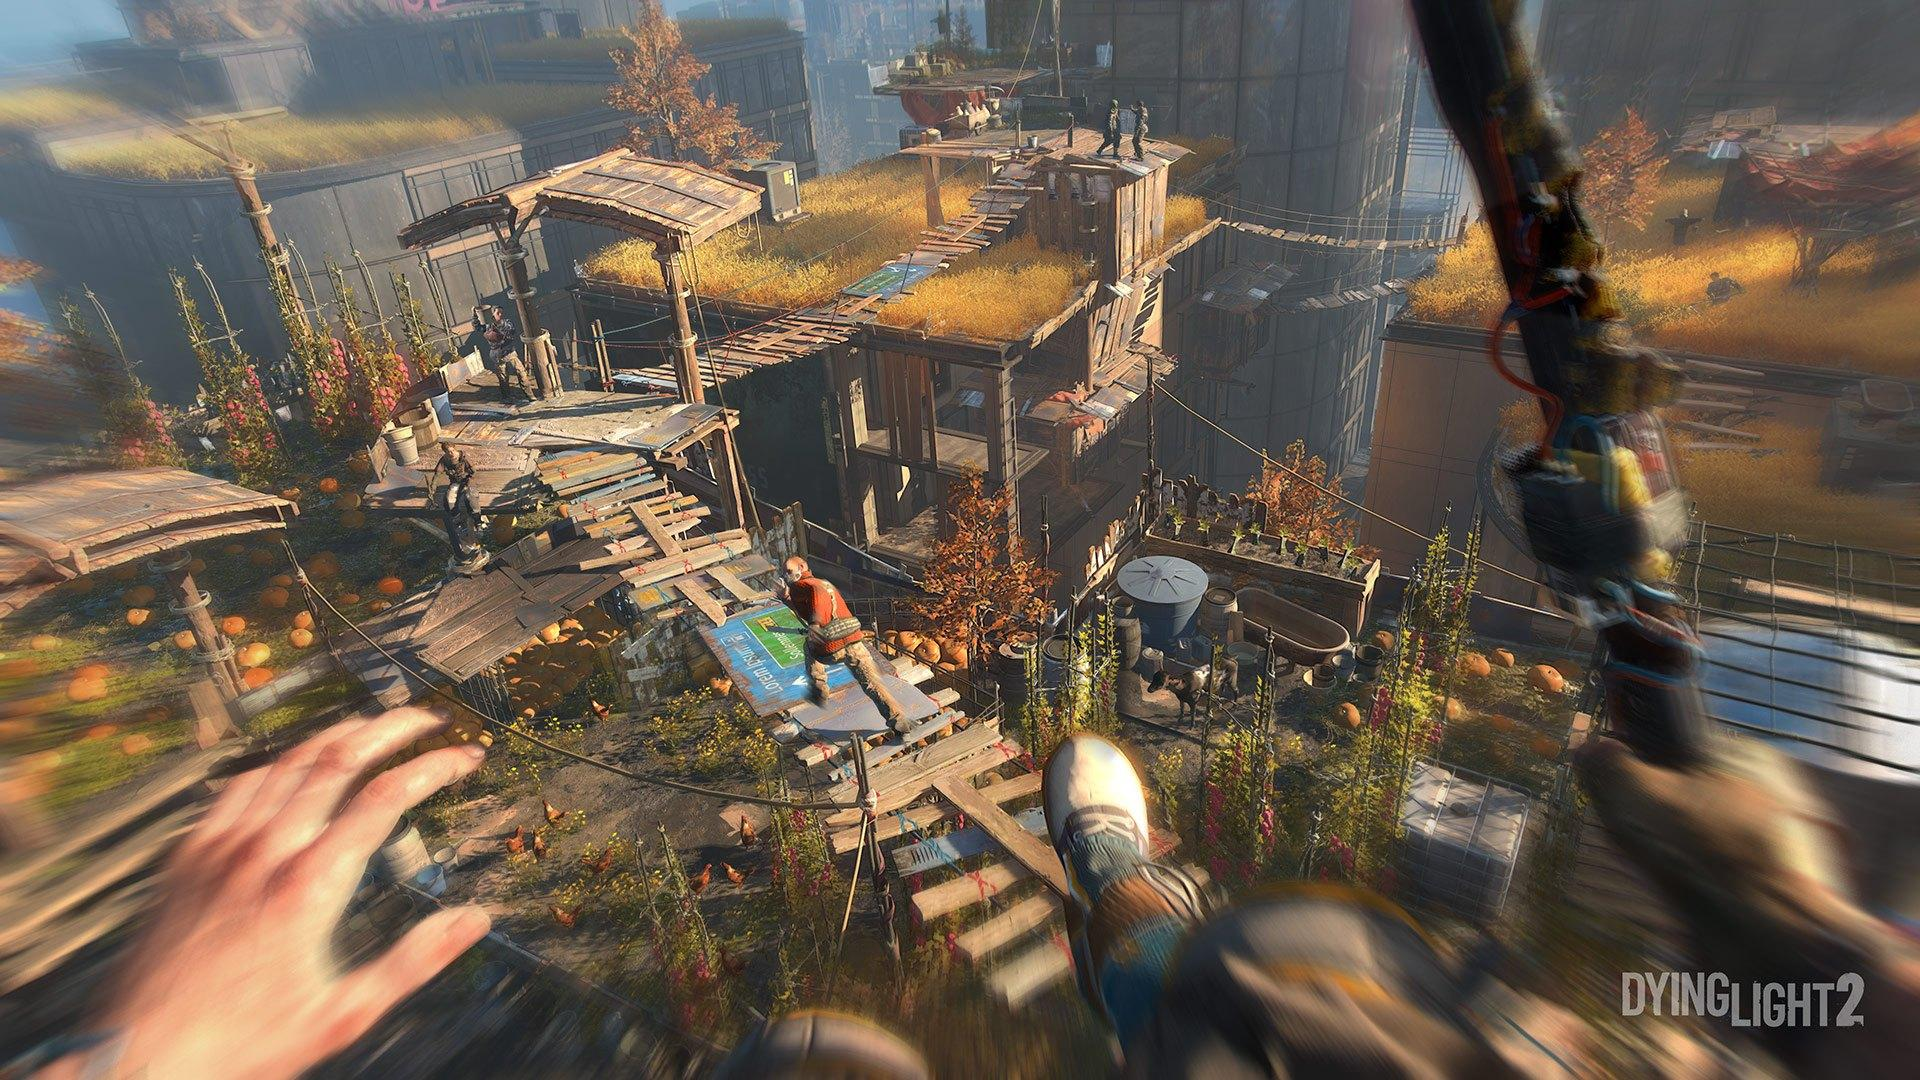 Dying Light 2 features agile movement and brutal melee combat in sprawling open world